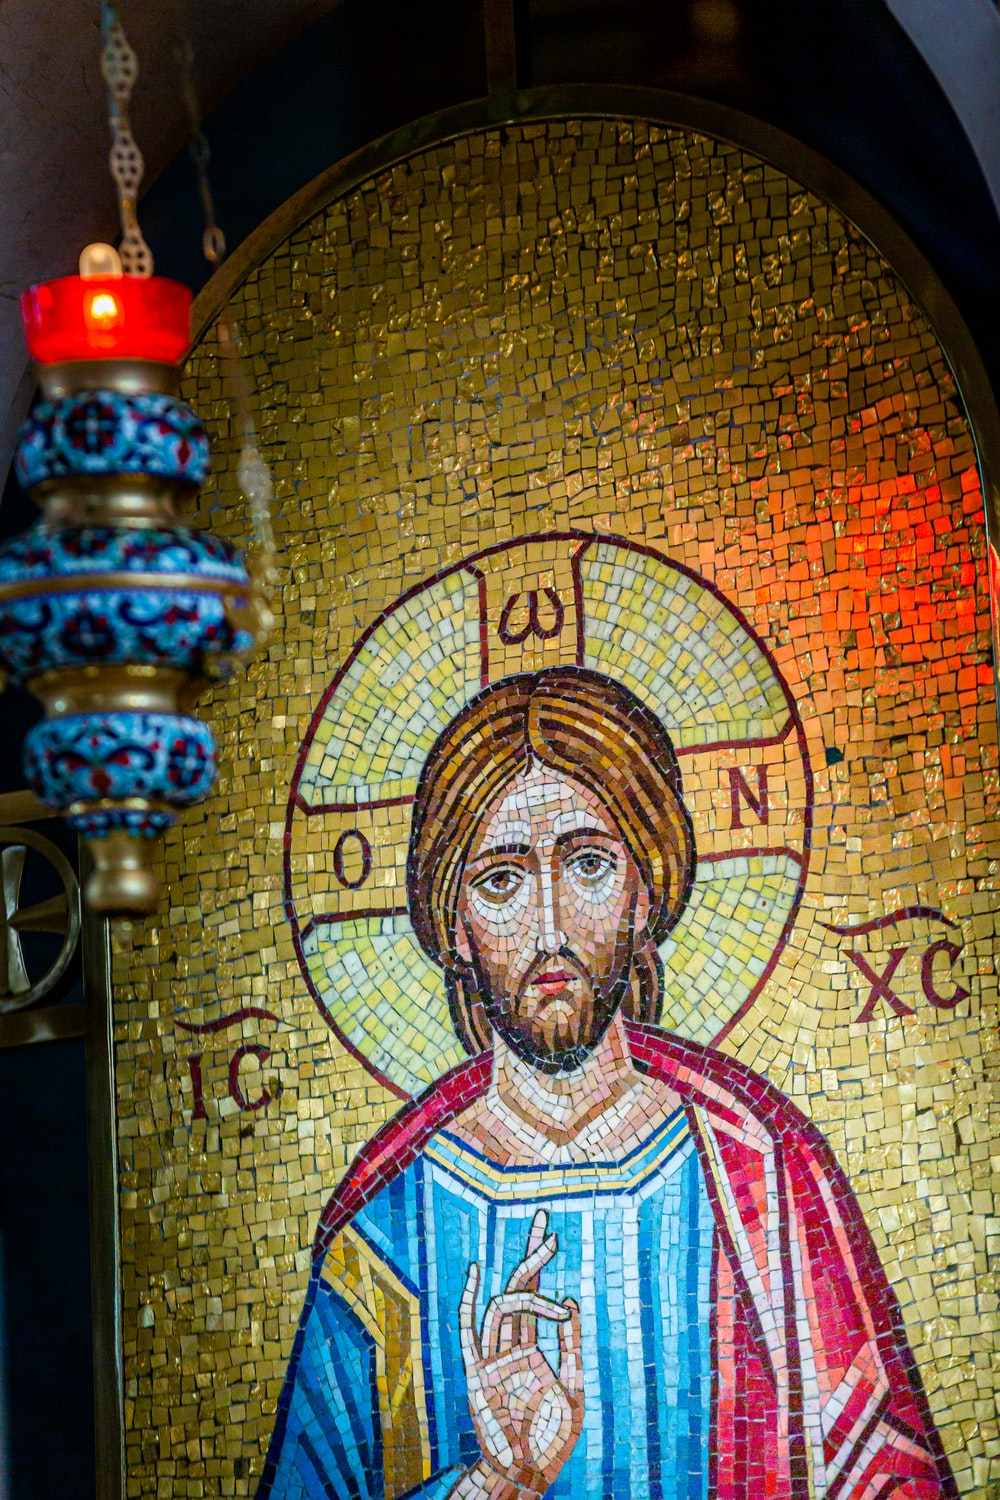 A panel of Jesus Christ from the iconostasis (icon bearer) of the Holy Trinity